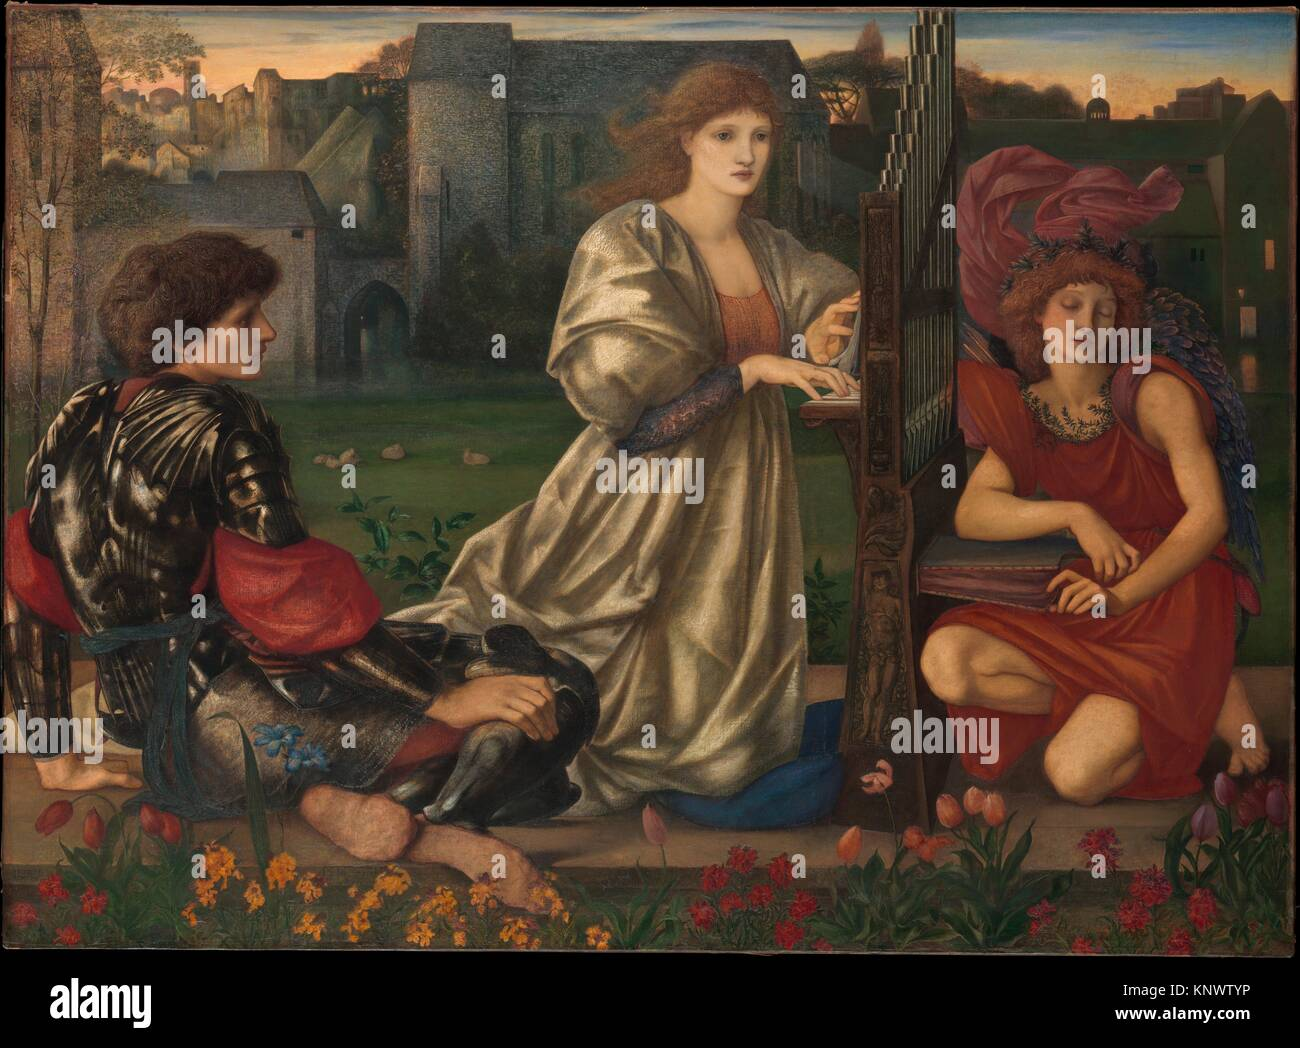 The Love Song. Artist: Sir Edward Burne-Jones (British, Birmingham 1833-1898 Fulham); Date: 1868-77; Medium: Oil Stock Photo